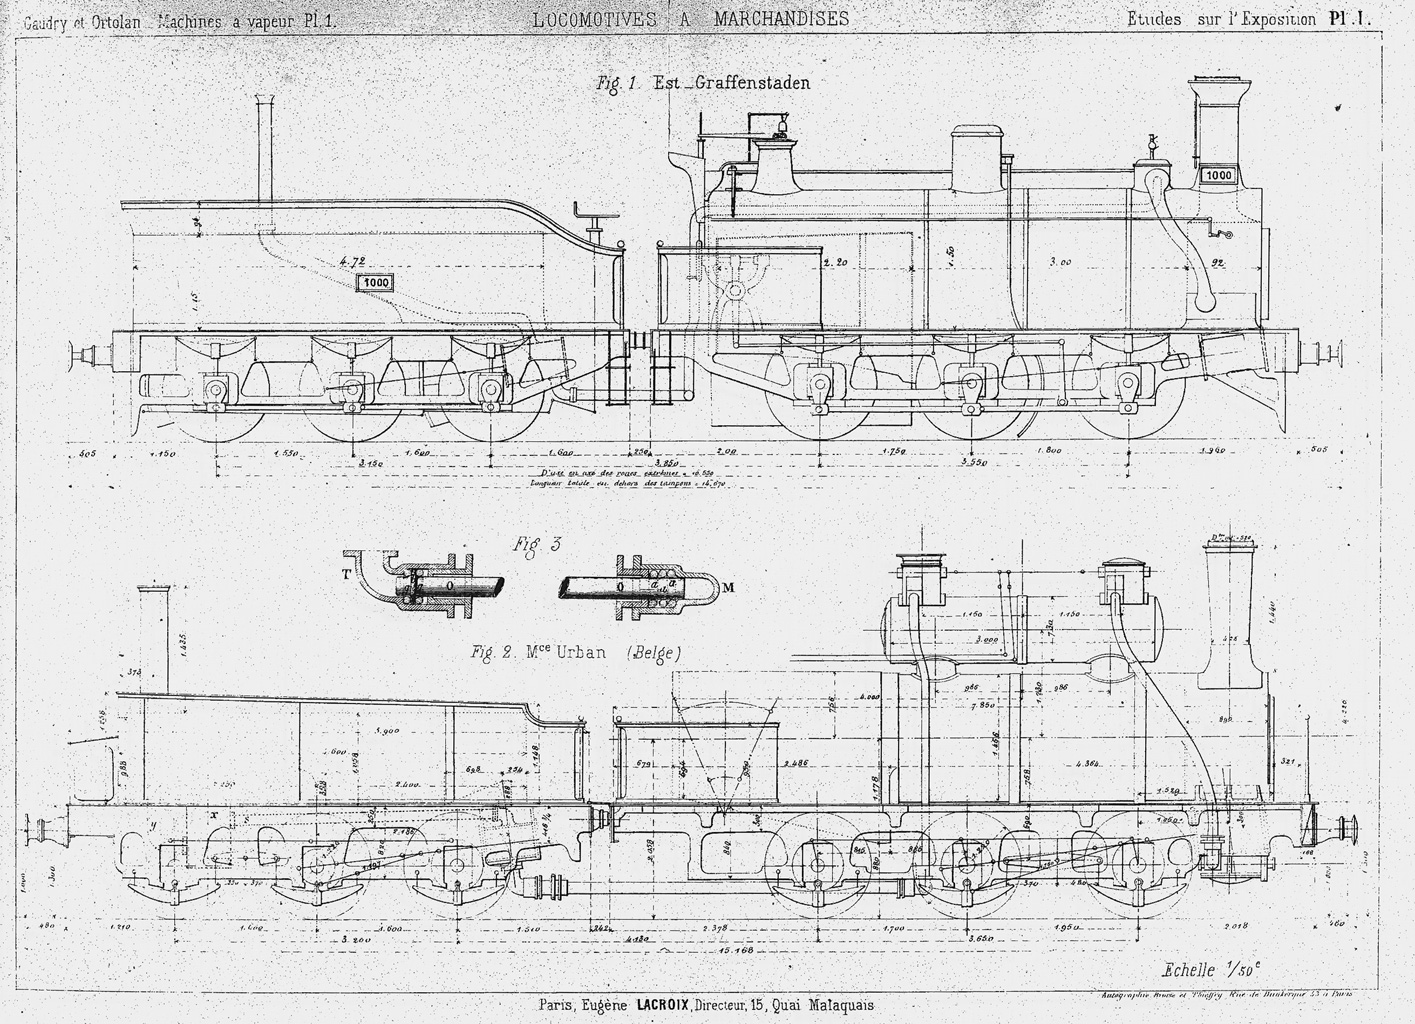 Side View Drawings Of Freight Steam Locomotive And Parts